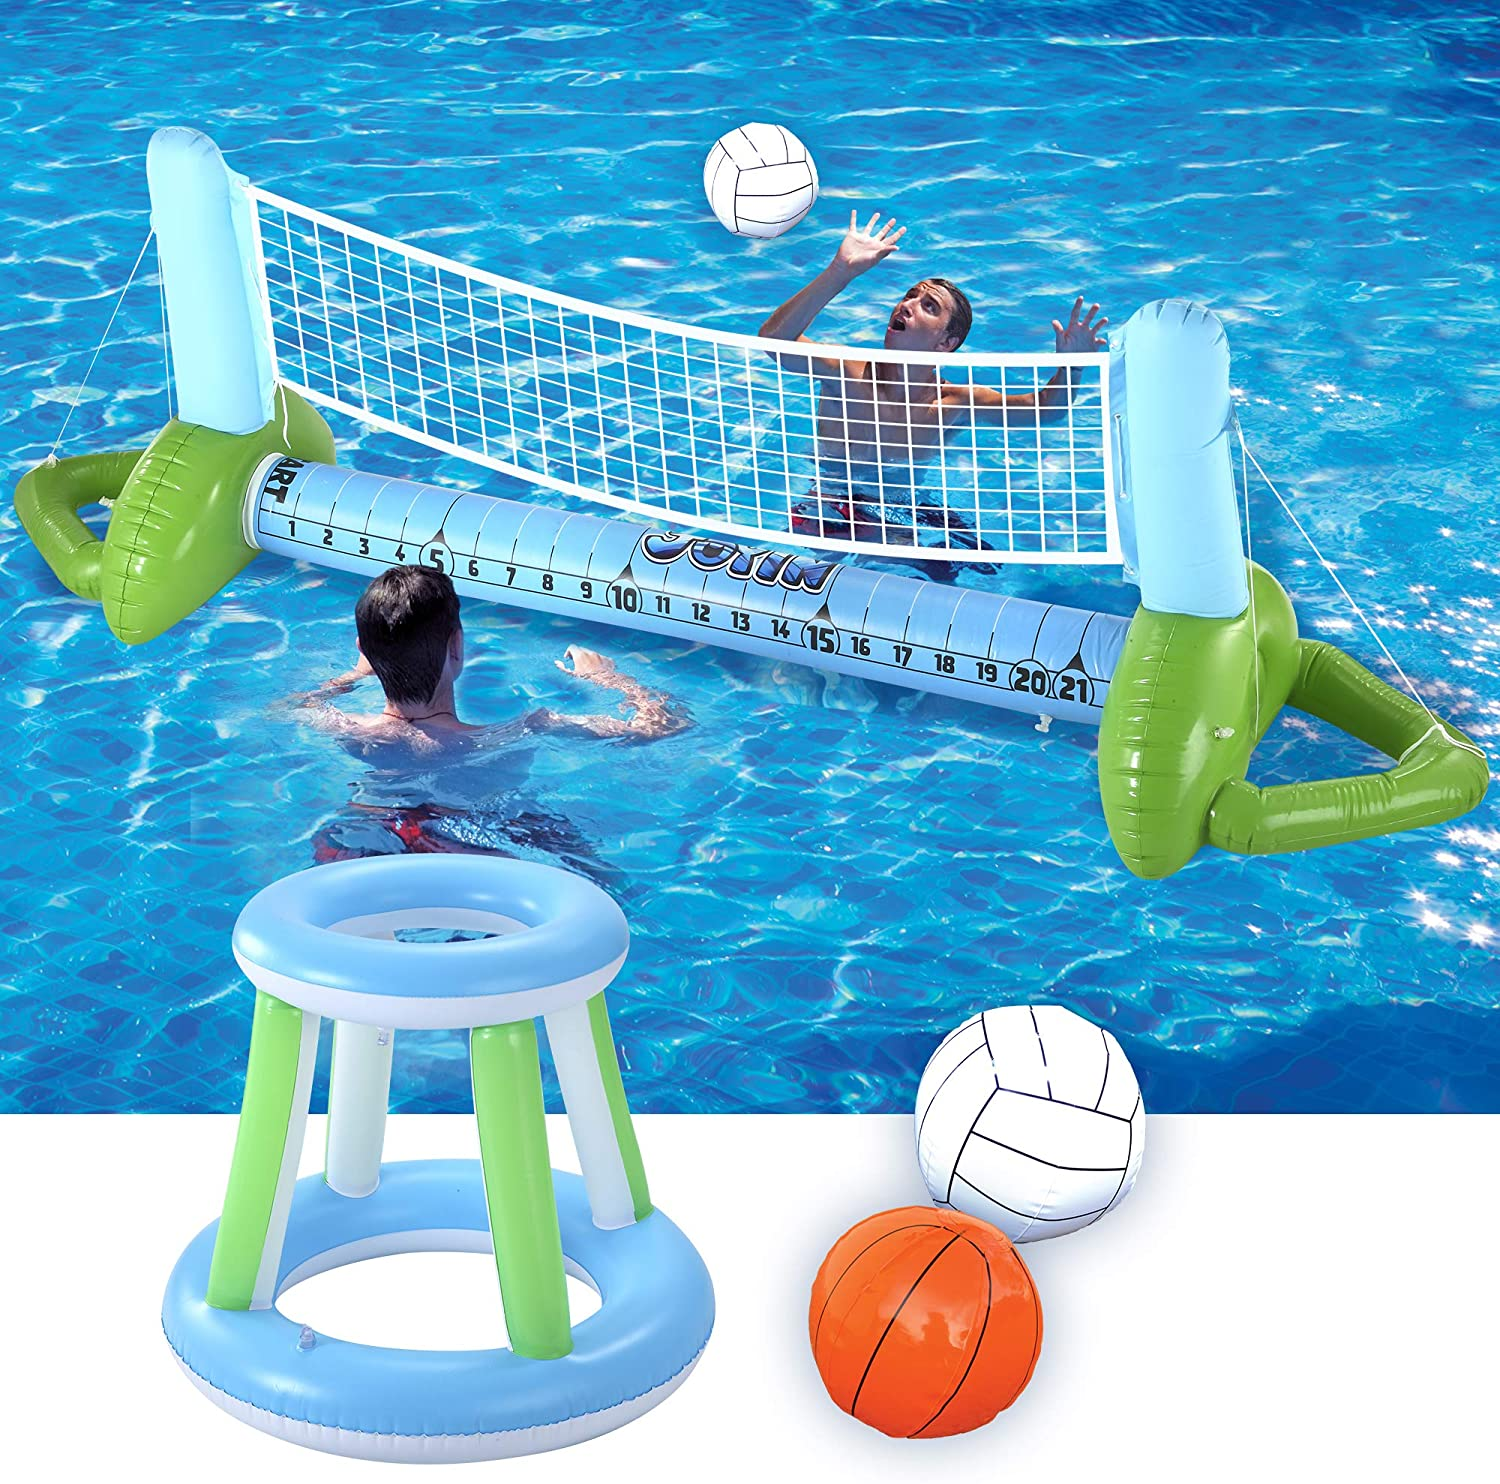 JOYIN Inflatable Volleyball Net & Basketball Hoops Pool Float Set Swimming Game Toy, Floating Summer Floaties, Volleyball Court Pool Party Lounge Raft, Inflatable Party Fun Games